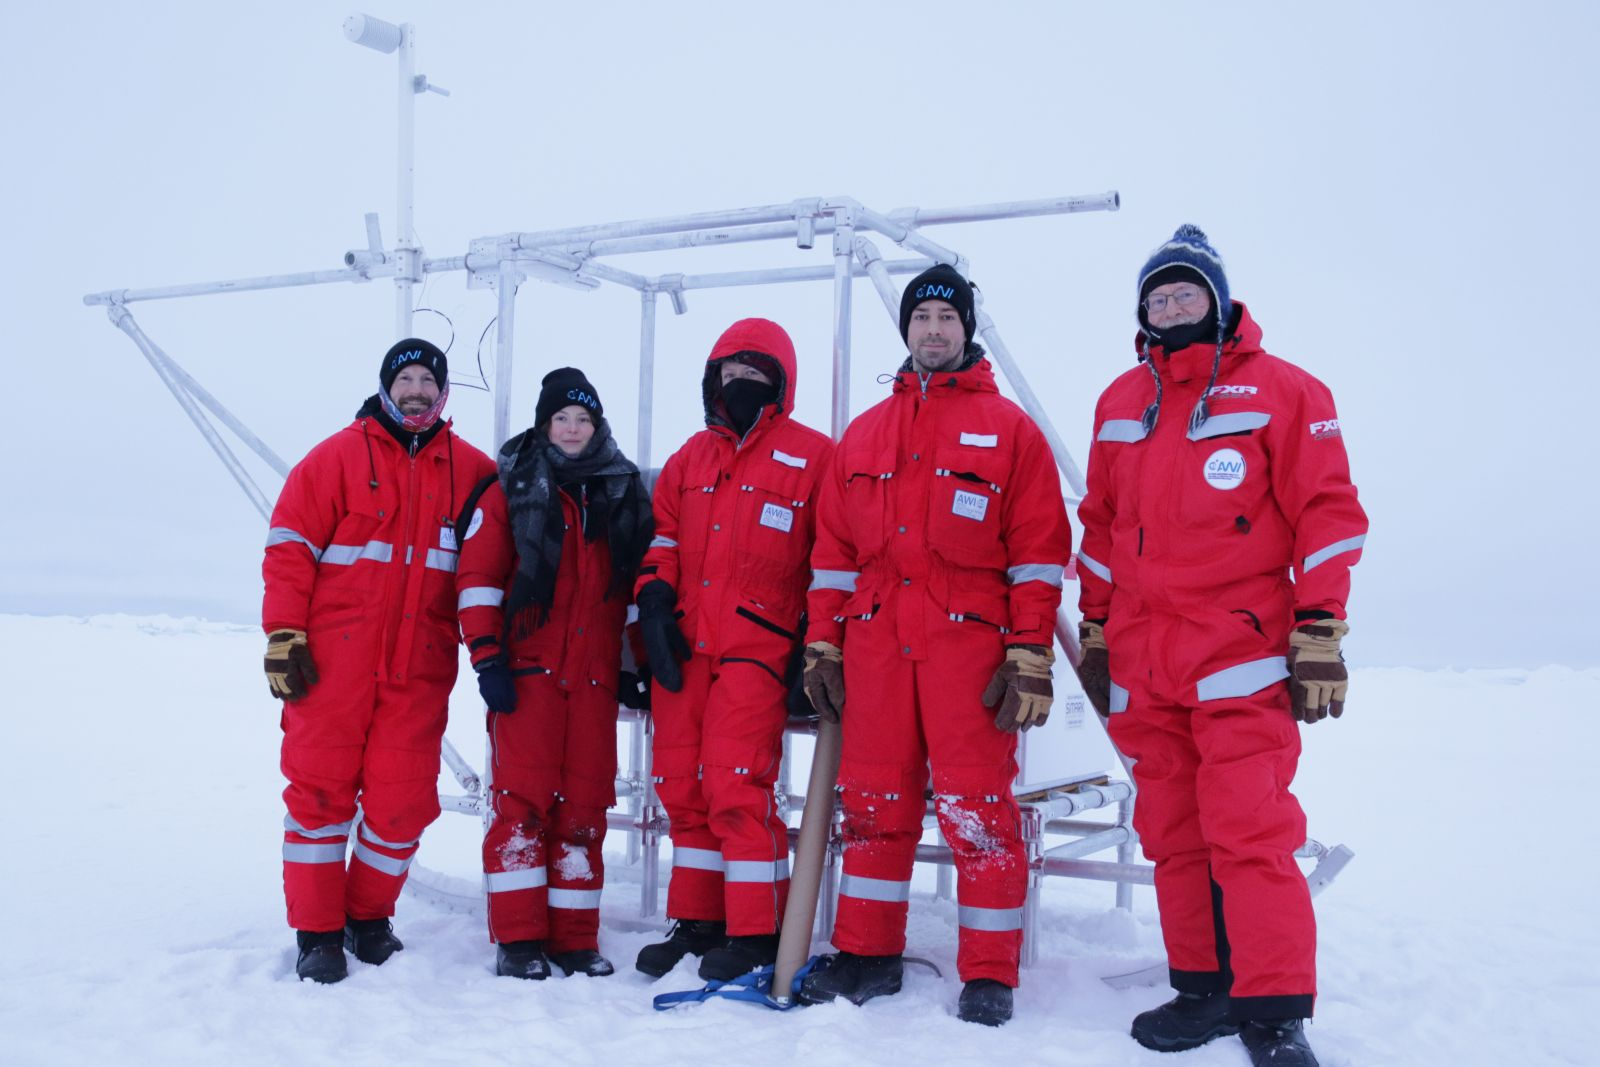 Scientists and students pause for a quick photo while setting up the meteorological station on the sea ice. From left to right: Sean Horvath, Julika Zinke, Anne Gold, Neil Aellen, and Ola Persson.